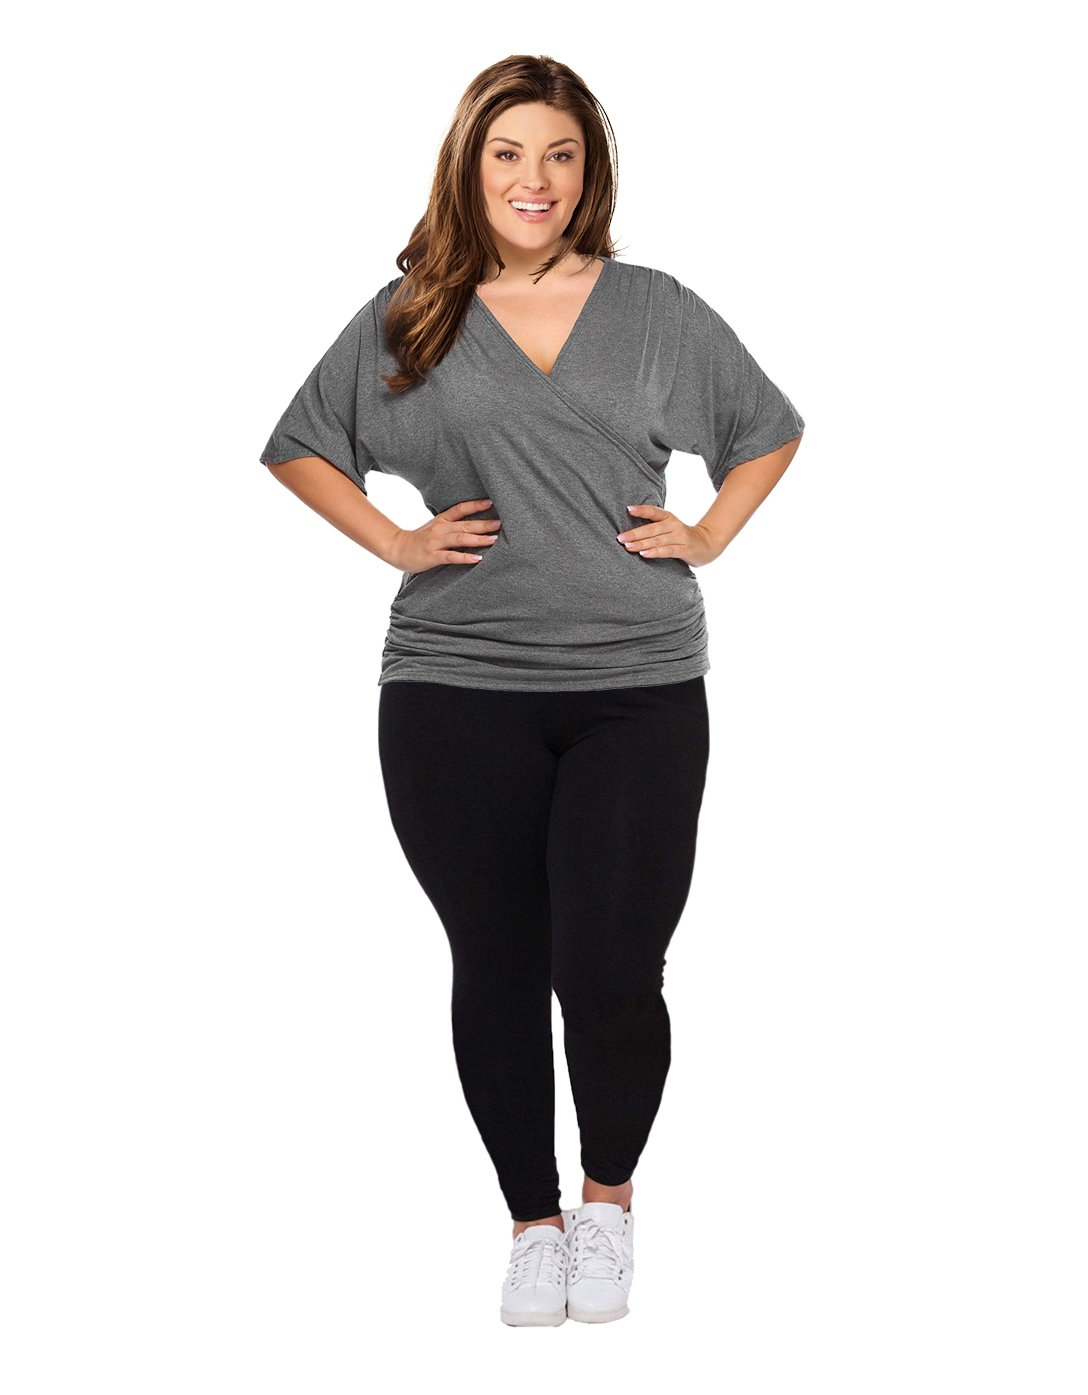 Opaque Graduated Compression Extra Firm Support (20-30mmHg) Plus Size Footless Microfiber Leggings Tights with Control Top. (XXXL(18W-20W))